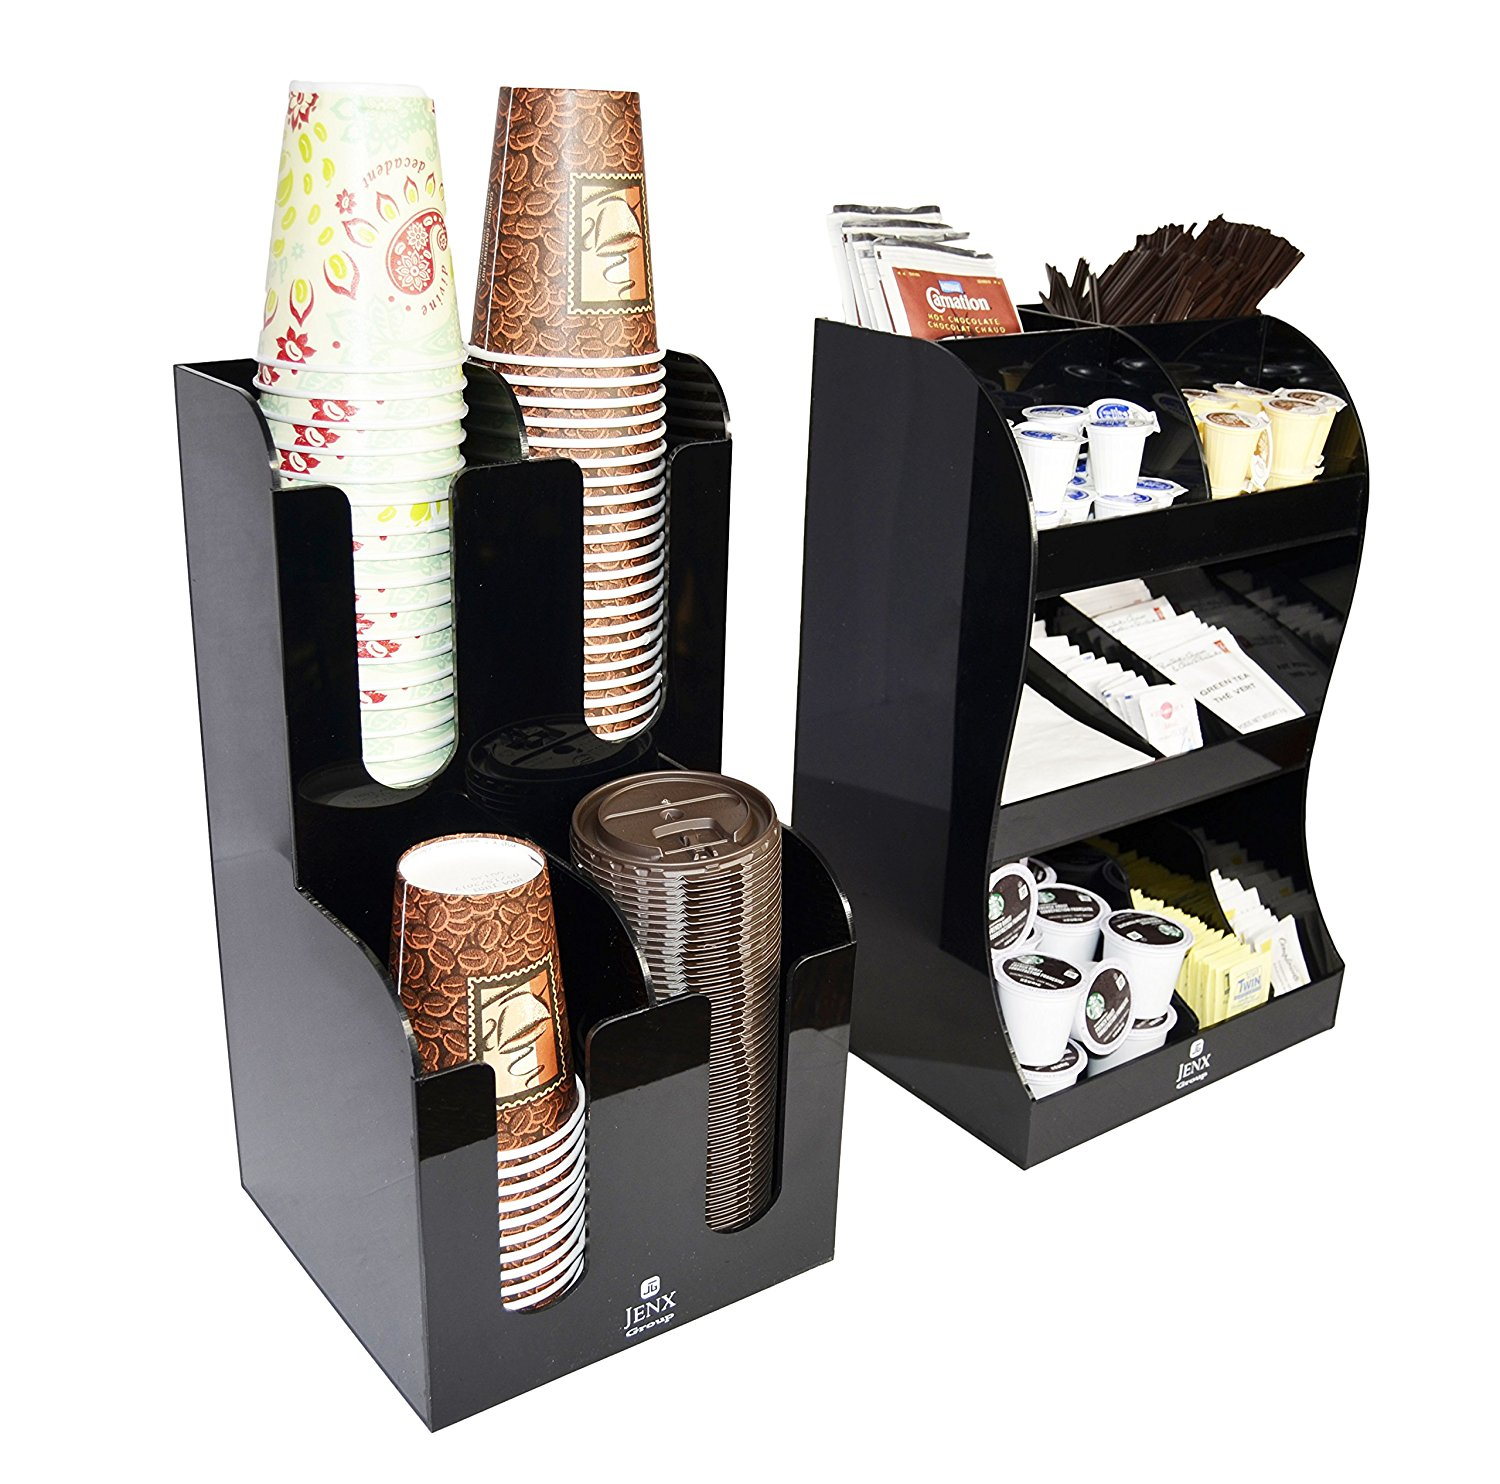 Jenx 2 Piece Combo Acrylic Coffee Condiment and Accessories Organizer for Hotel Cafeteria Restaurant Coffee Tea Shop Office Break-room